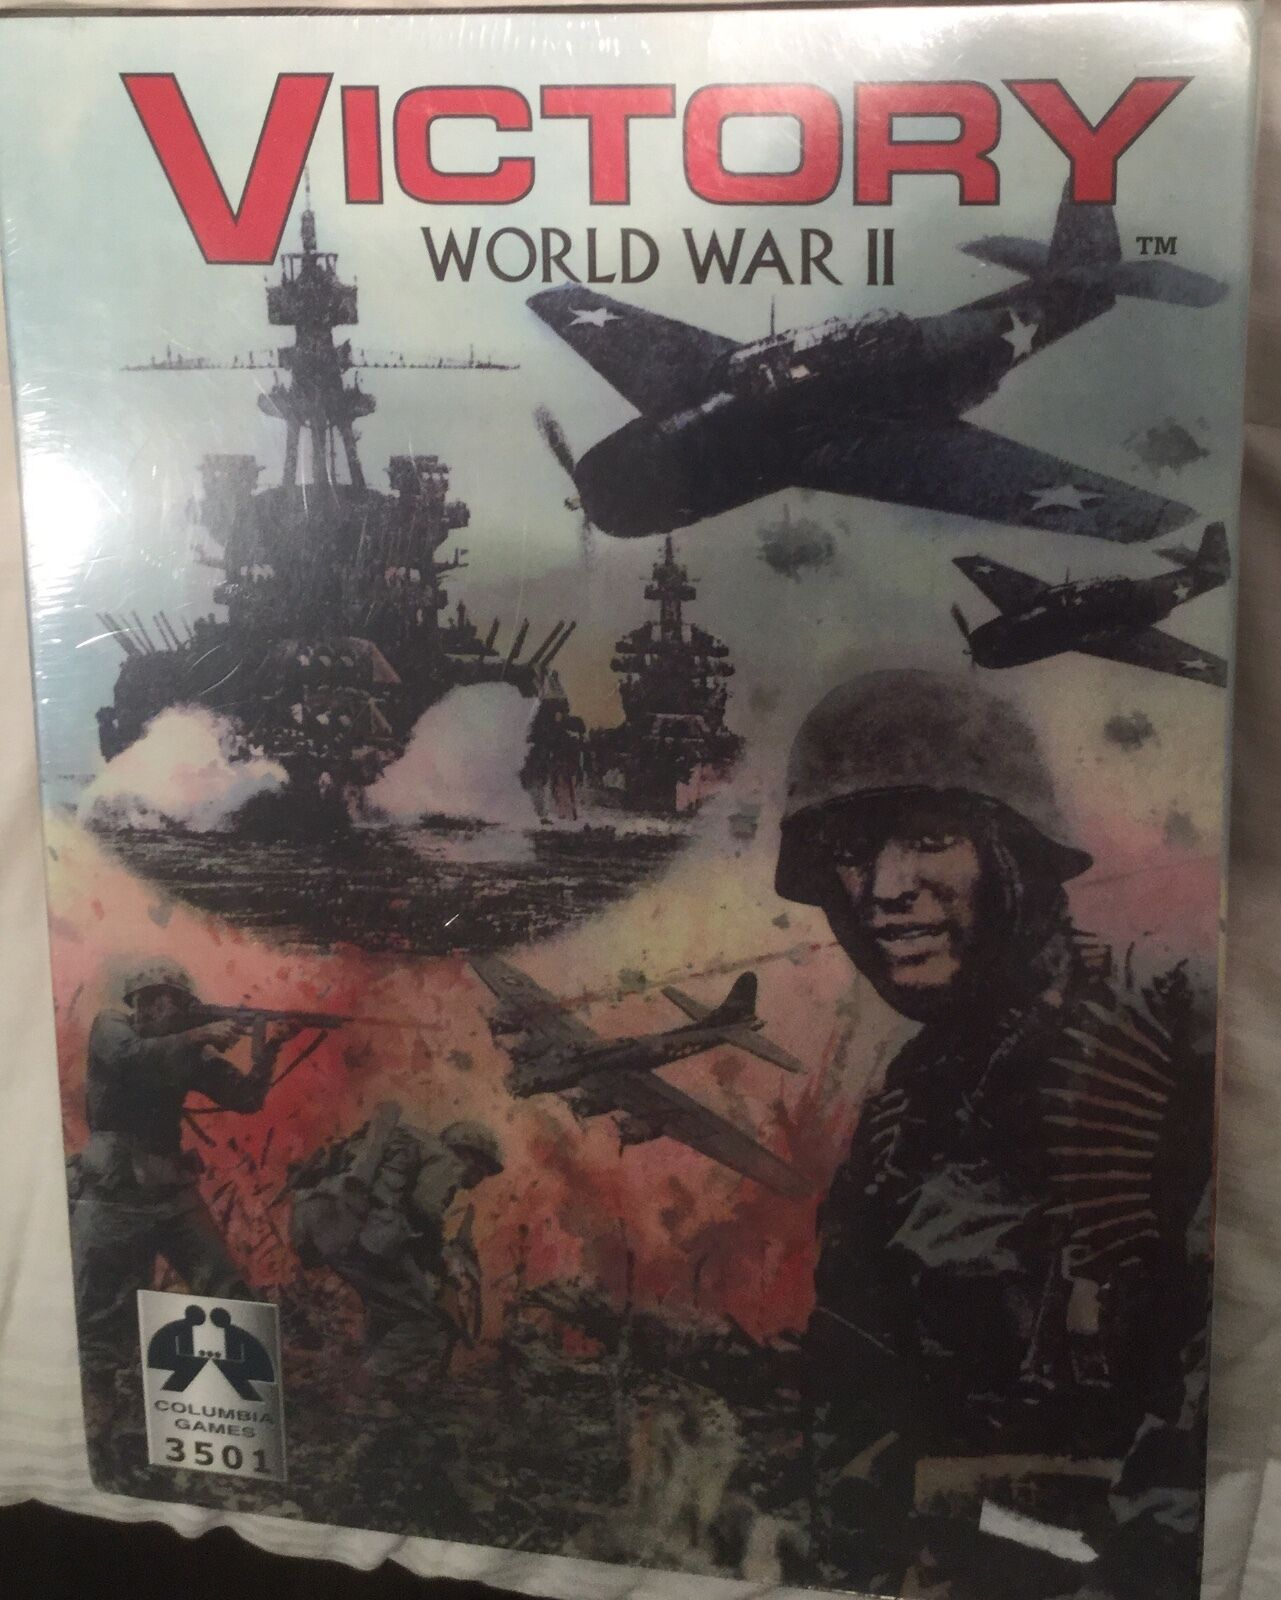 Victory, World War II  Wargioco by Columbia giocos,  Shrink wrapped.  bellissima